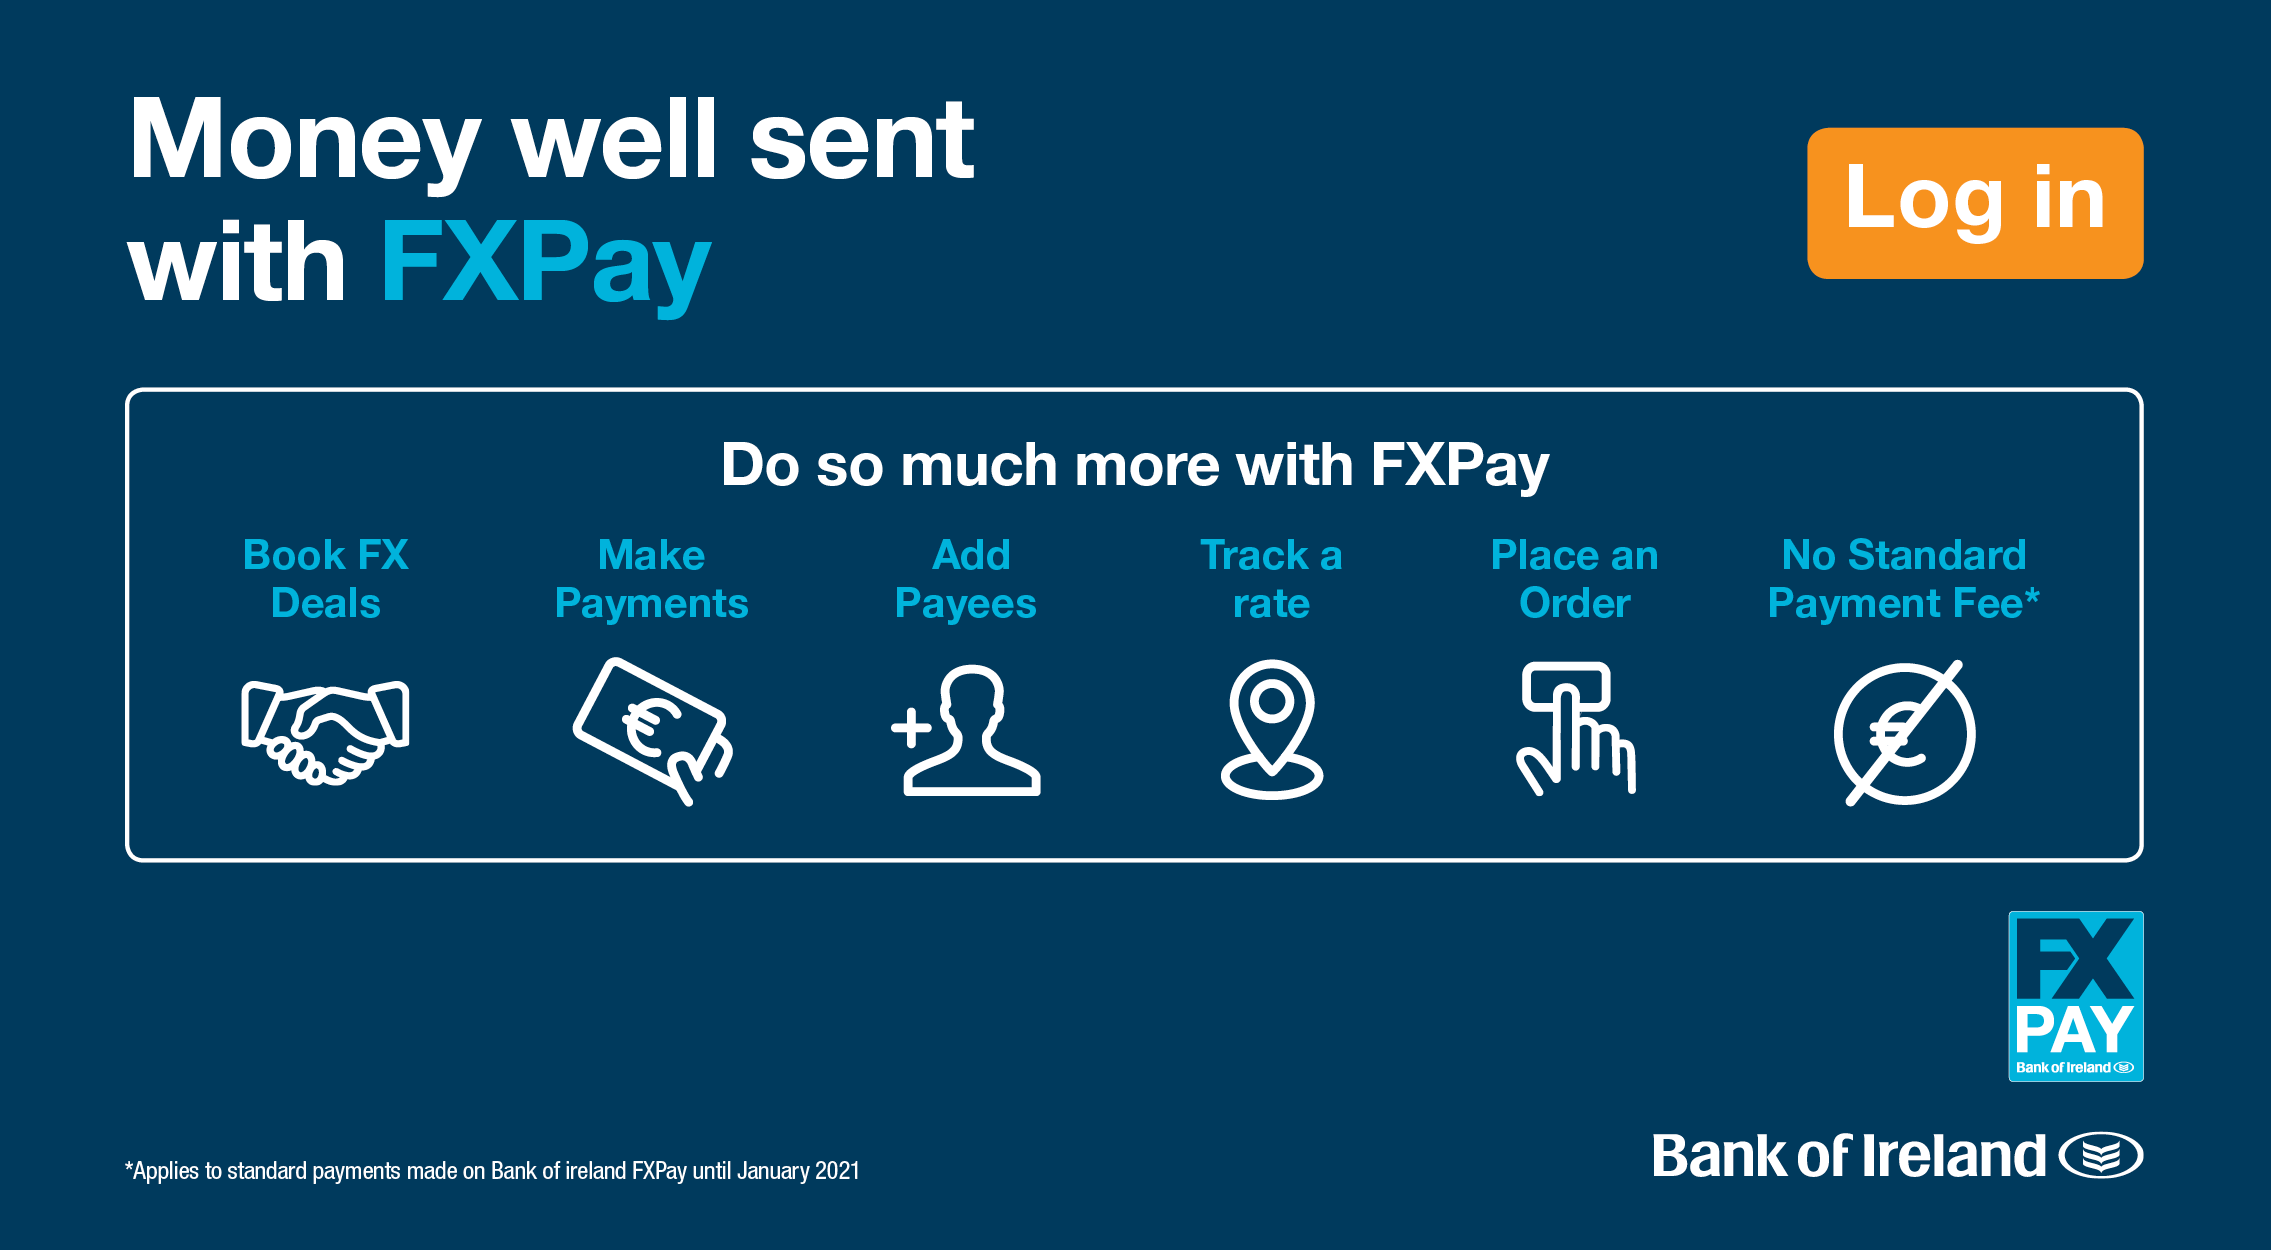 Money well sent with FX Pay Do so much more with FX Pay Book FX Deals Make Payments Add Payees Track a rate Place an Order No Standard Payment Fee Note: No Standard Payment Fee applies to standard payments made on Bank of Ireland FX Pay until January 2019